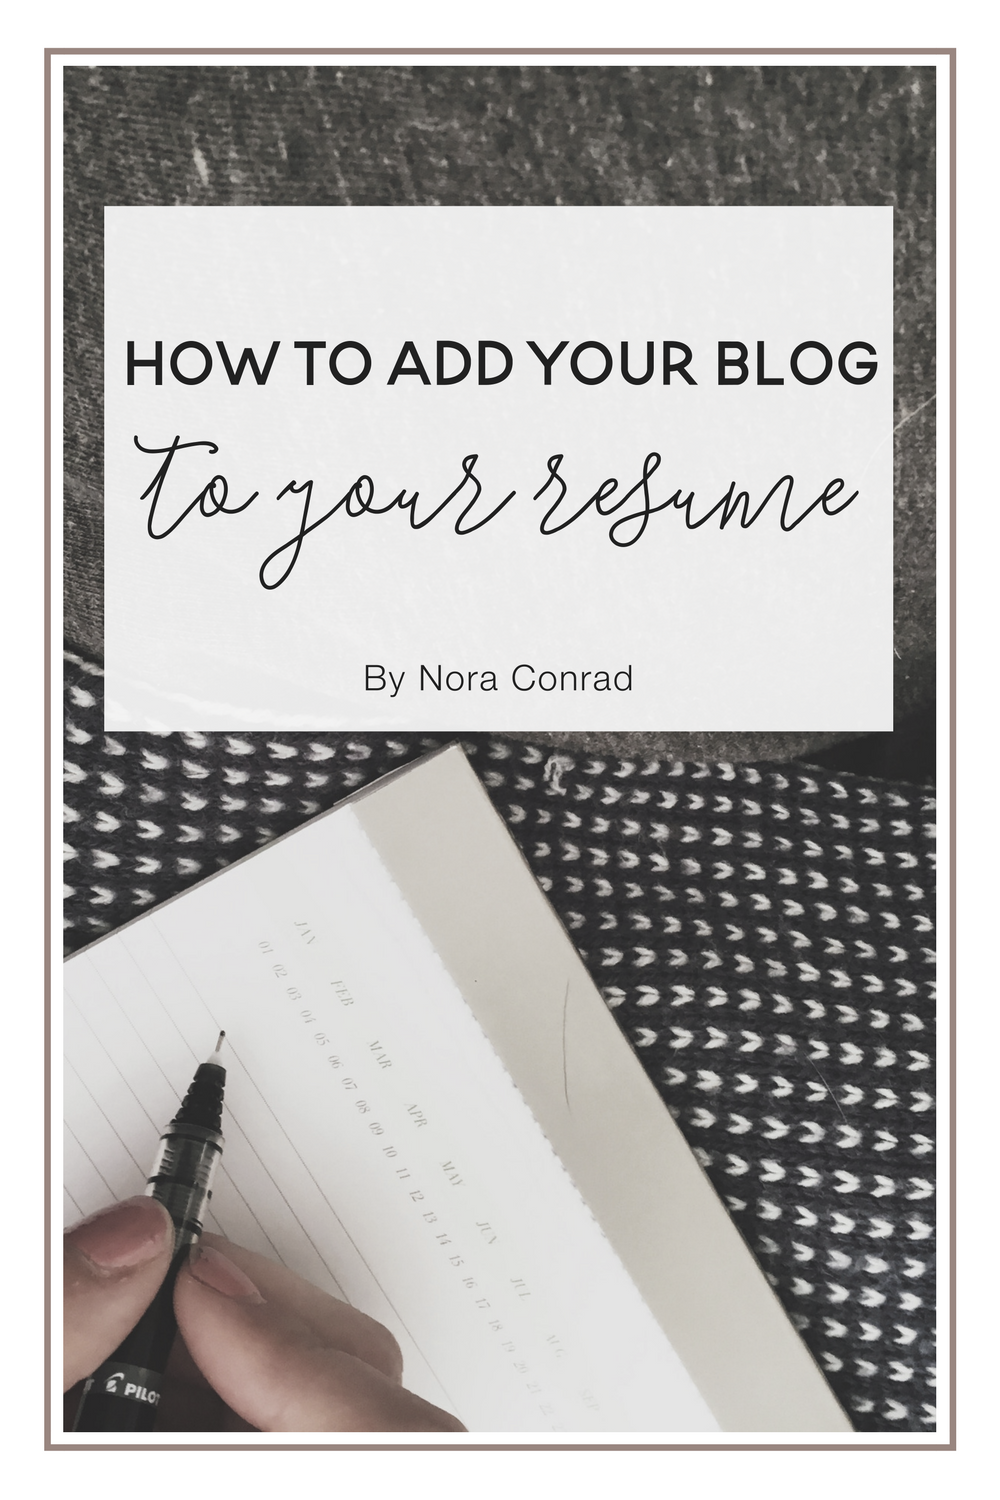 If you've been working on your blog or website for over 6 months, you should add it to your resume right now. In this post, I'll explain how to do it.